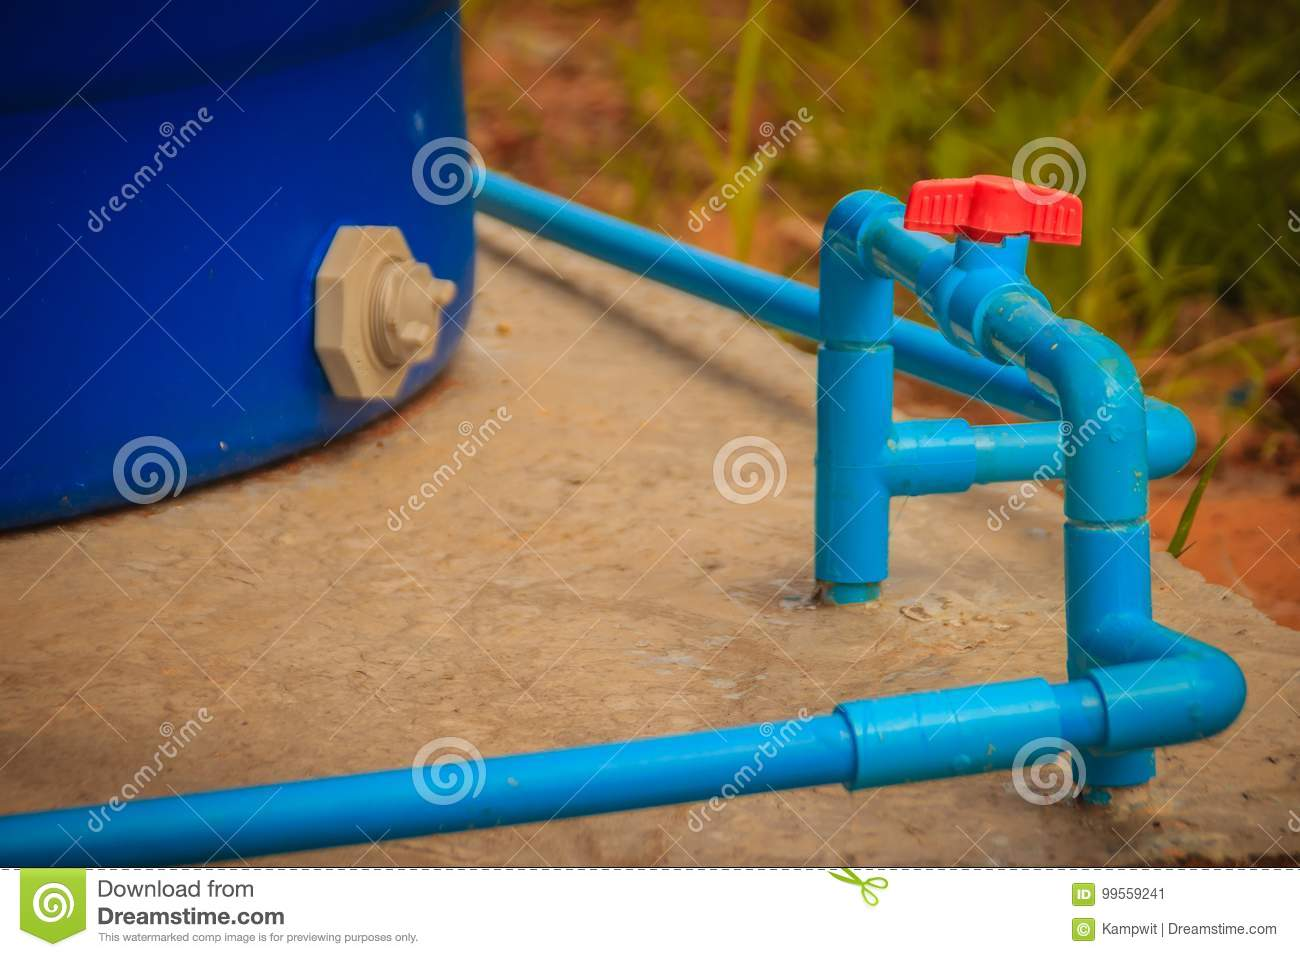 Red Knob Of PVC Ball Valve On The PVC Pipe Line In